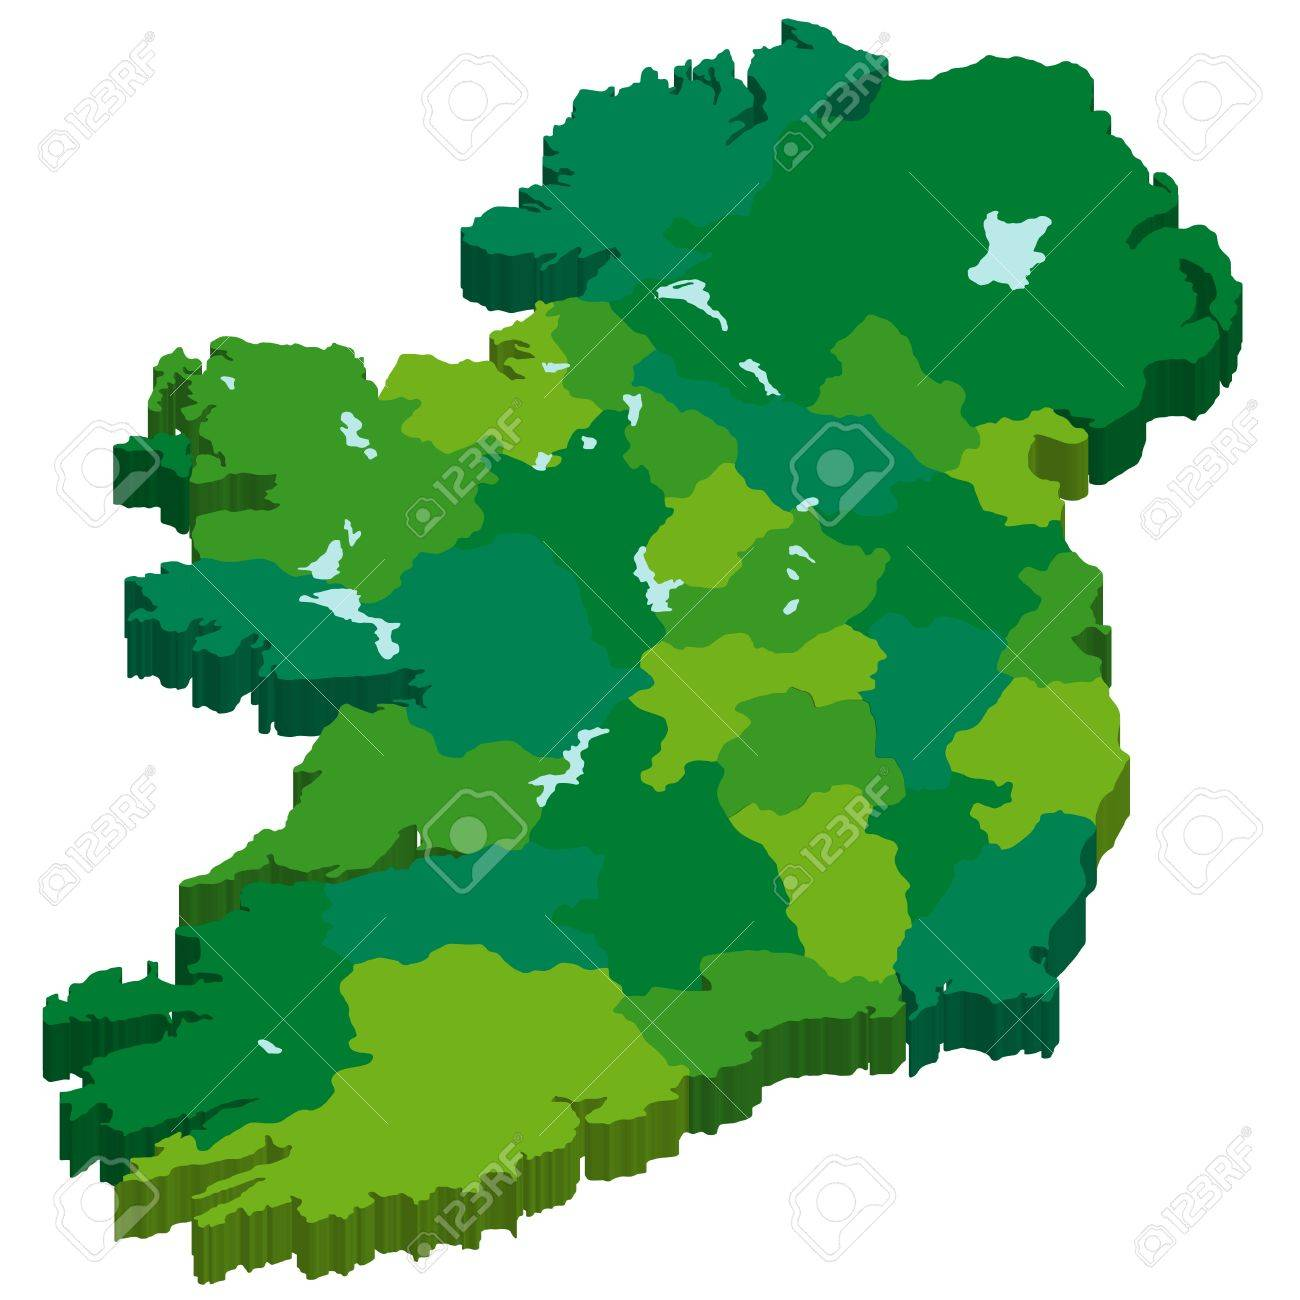 Ireland Stock Vector - 17715216